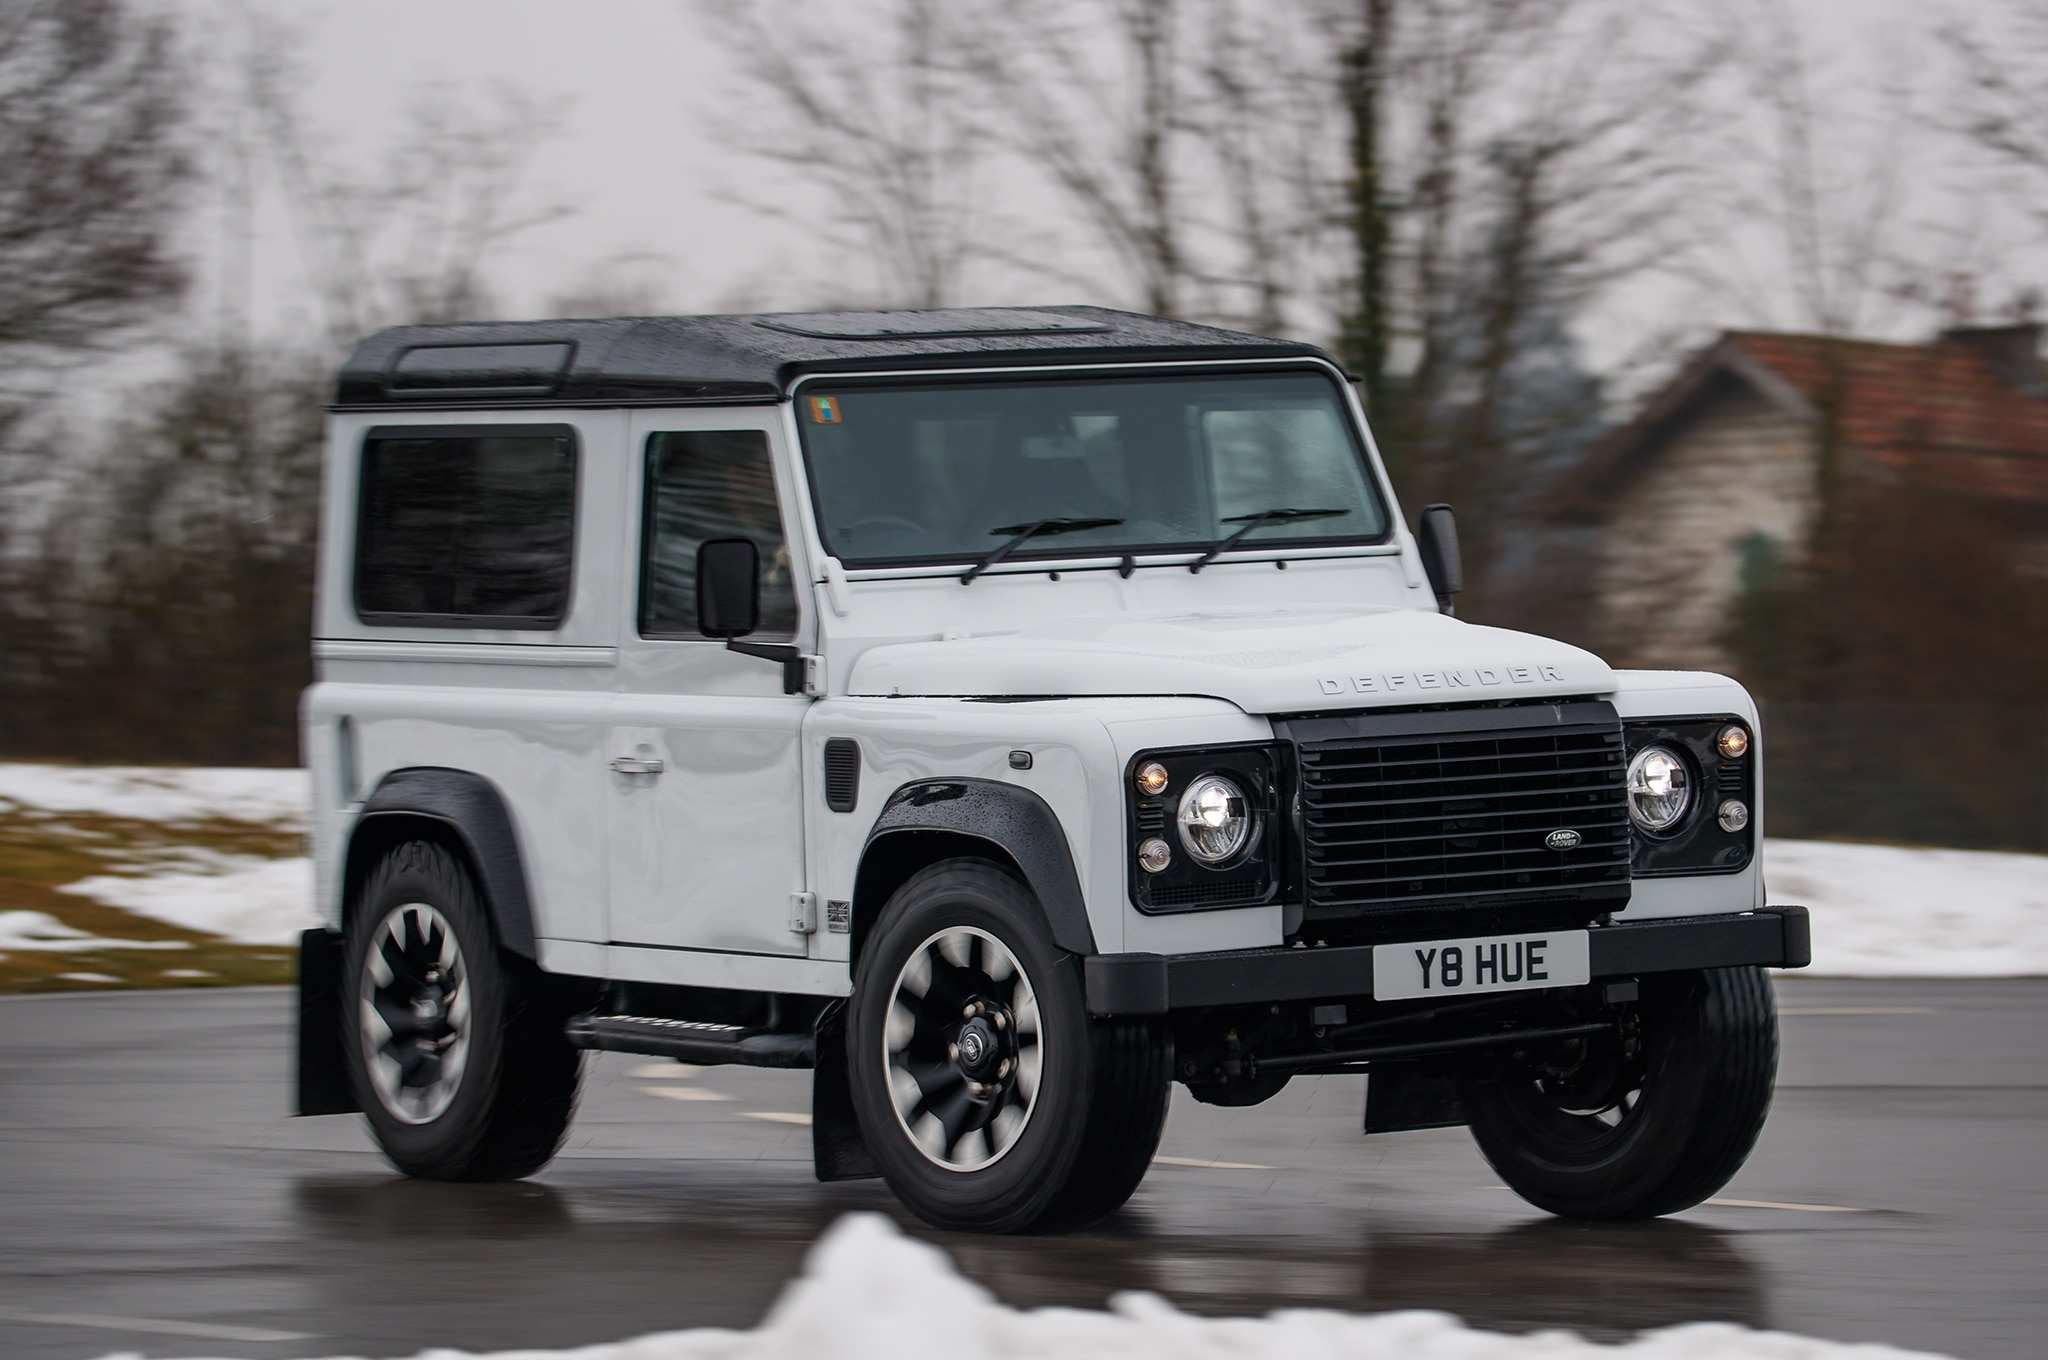 87 All New 2019 Land Rover Defender Price Images for 2019 Land Rover Defender Price